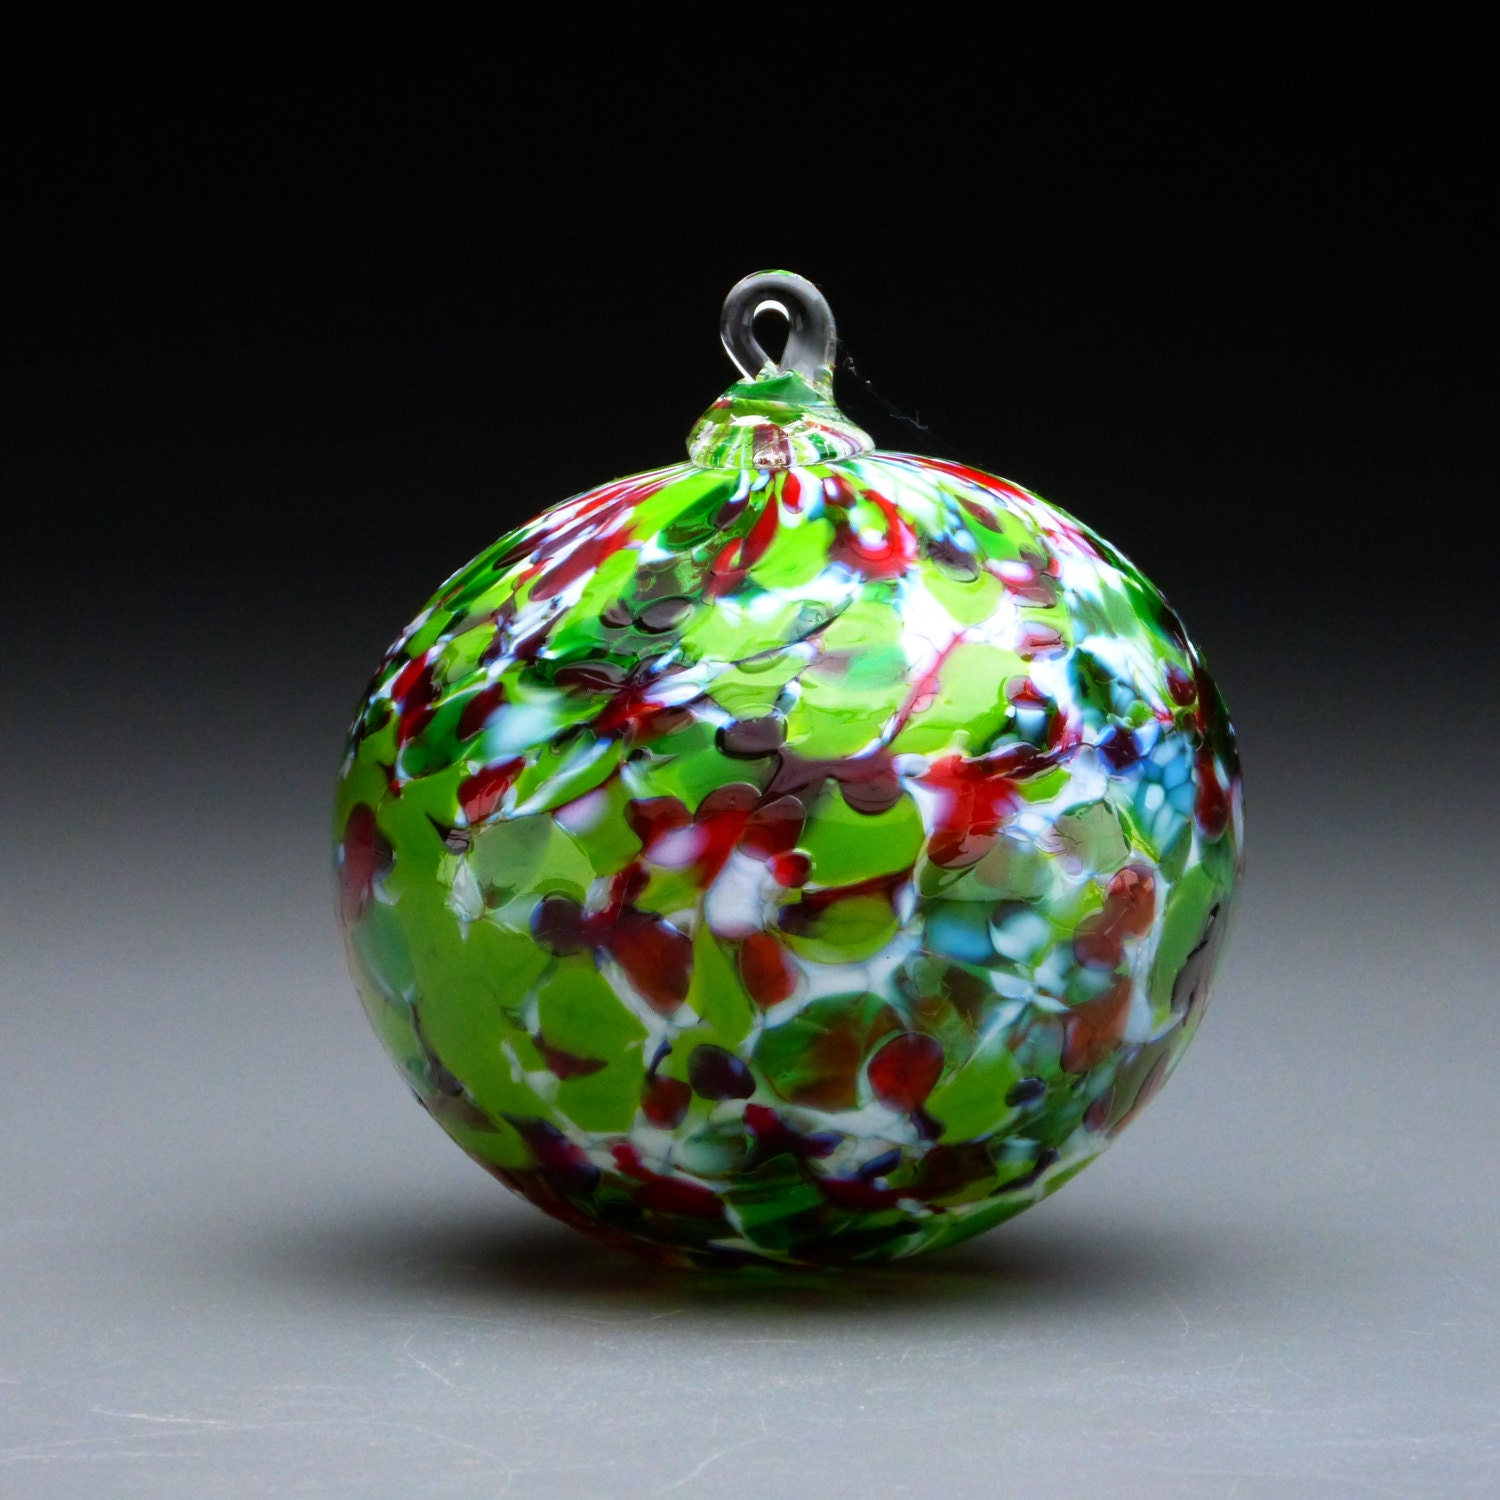 Hand made blown glass christmas ornament in tones of red